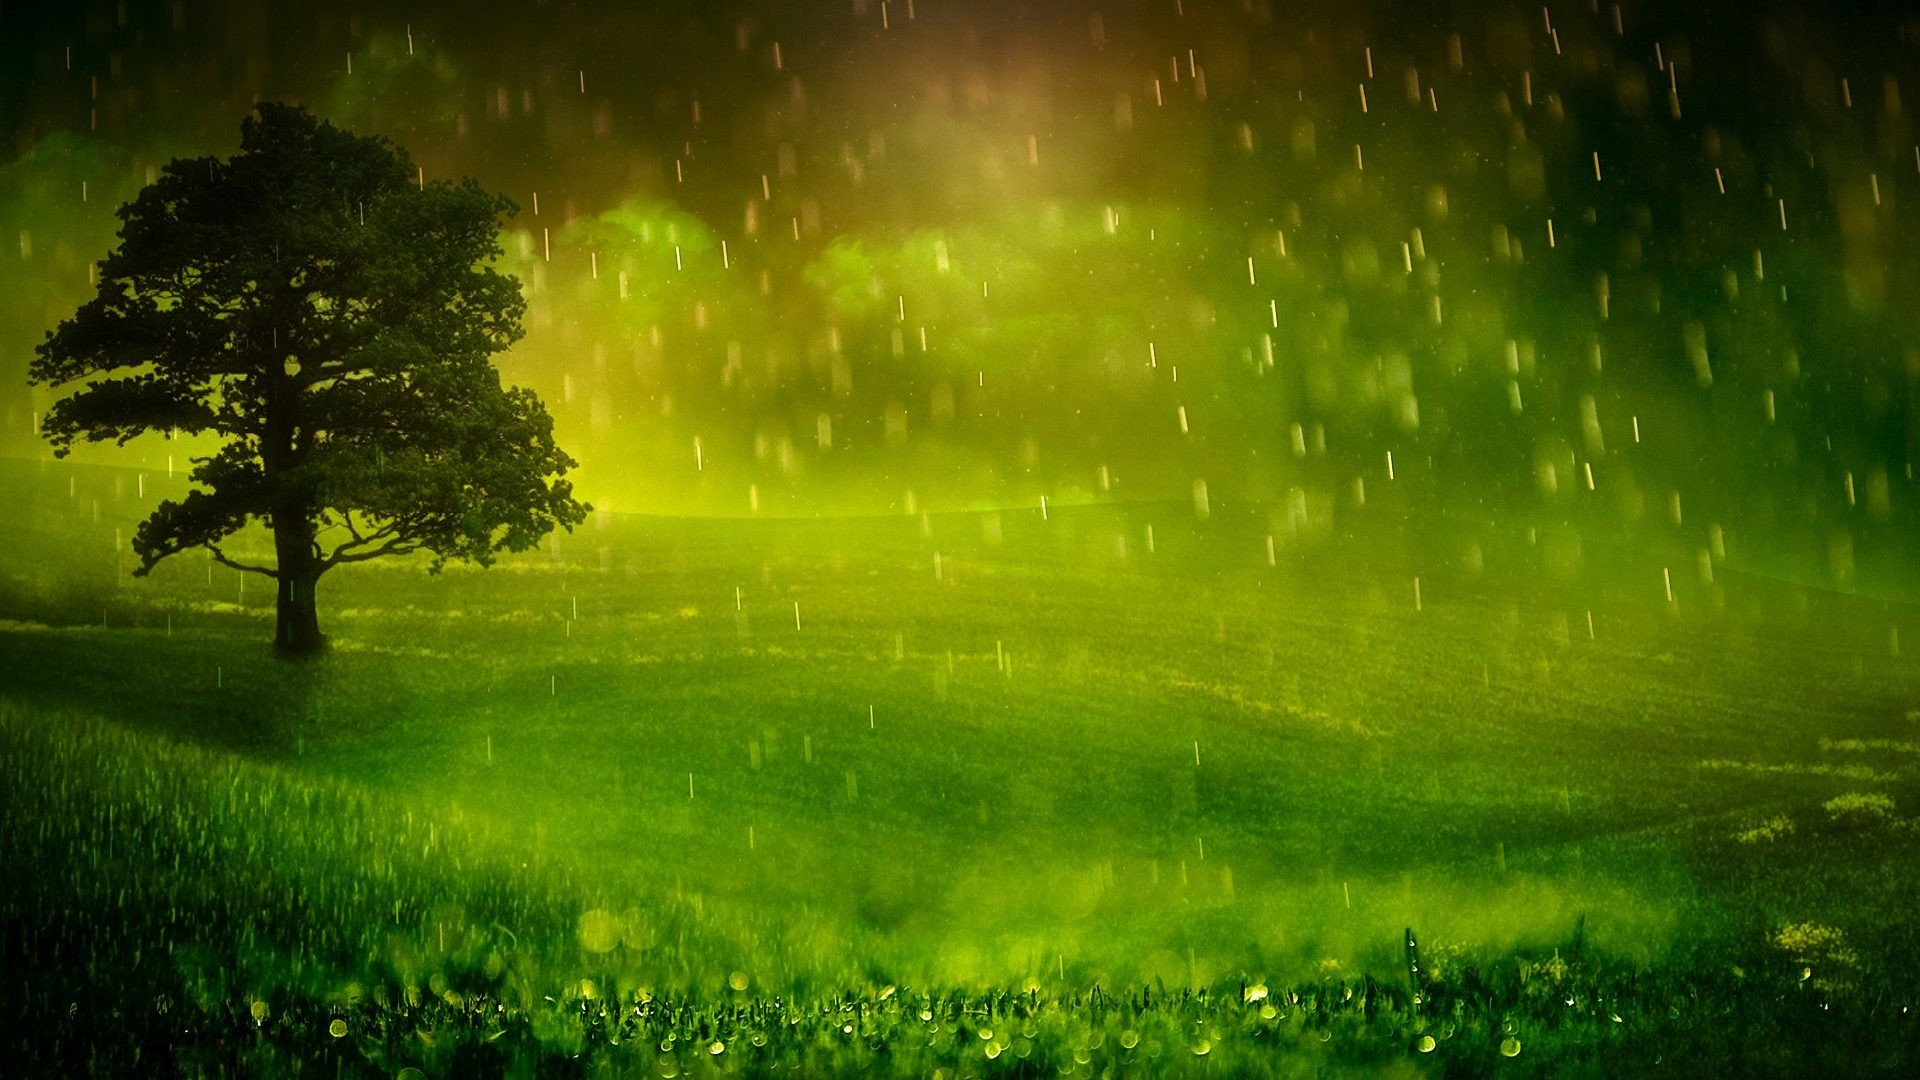 1920x1080 Storm Green Rain Pretty Peaceful Tree Rainy Stormy Field Water Splendor  Clouds Lovely Beauty Drops Nature Sky Beautiful Trees Landscape Grass Rice  Fields ...